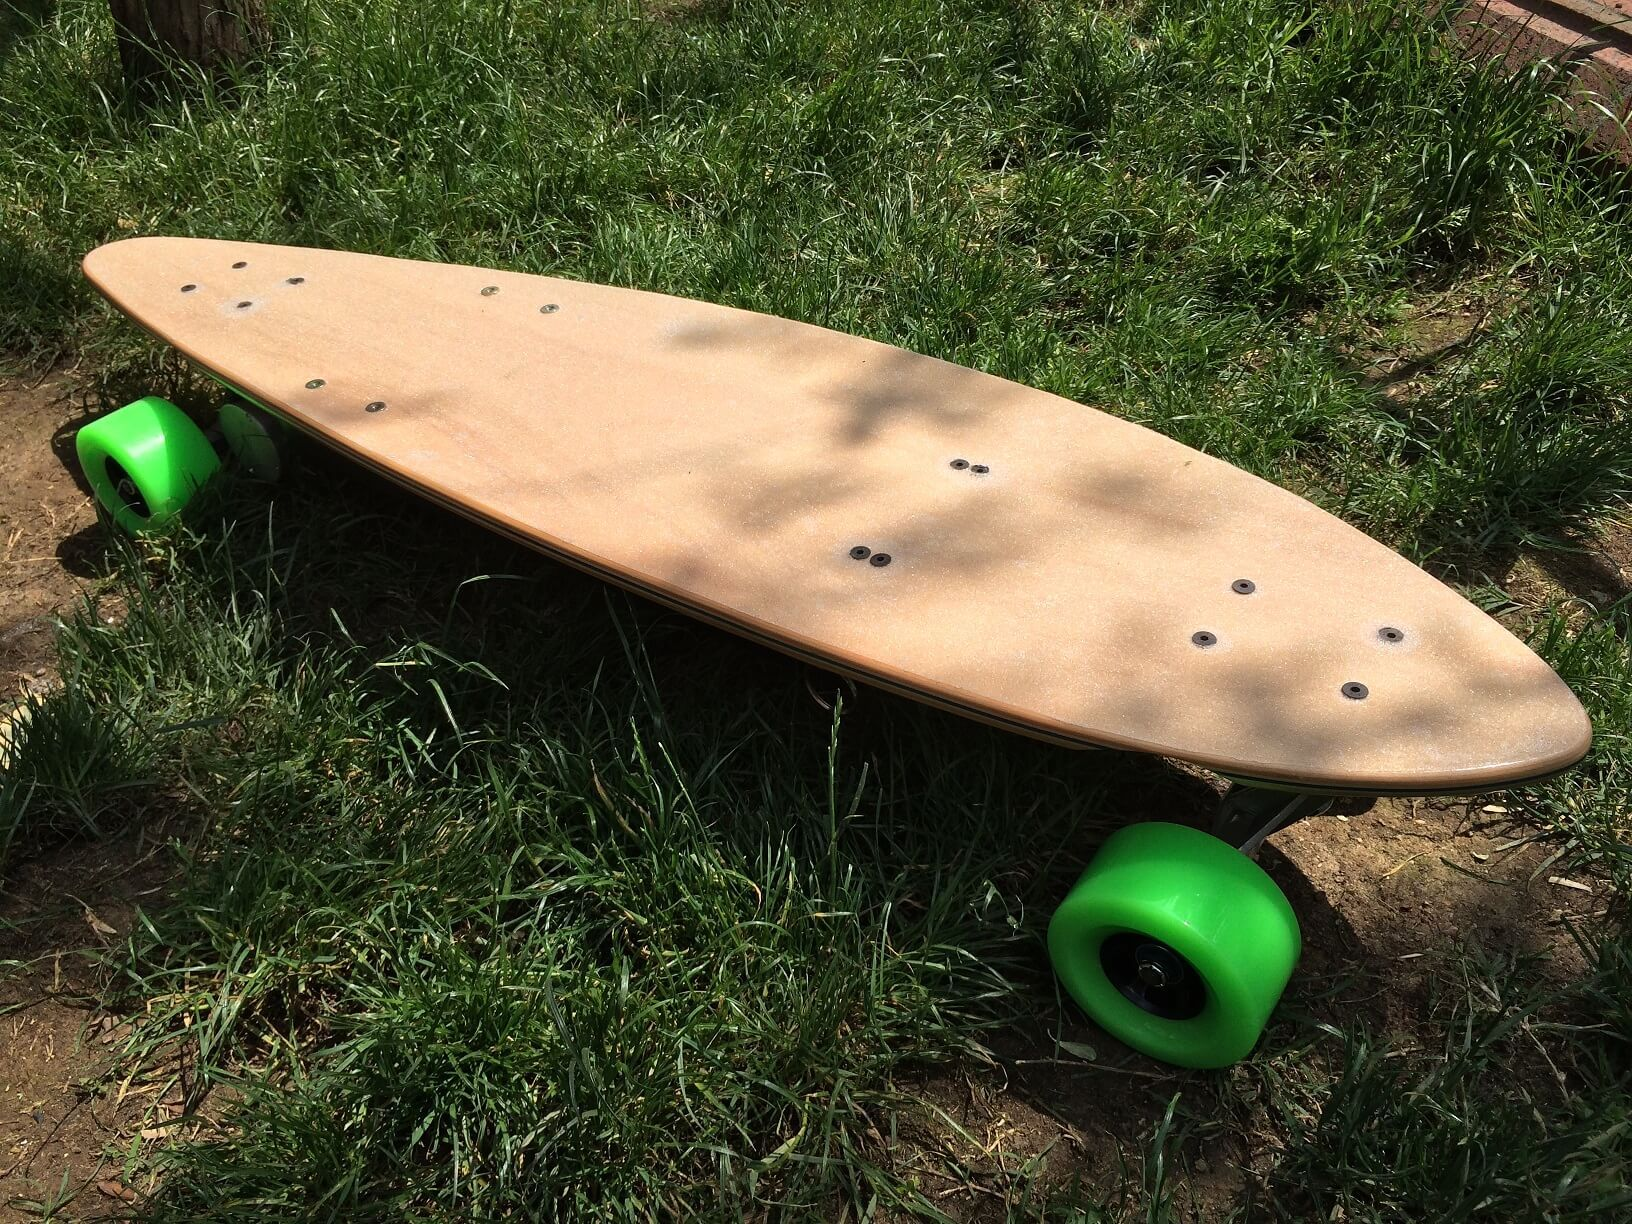 X Board - Urban (Electric Skateboard / Longboard)